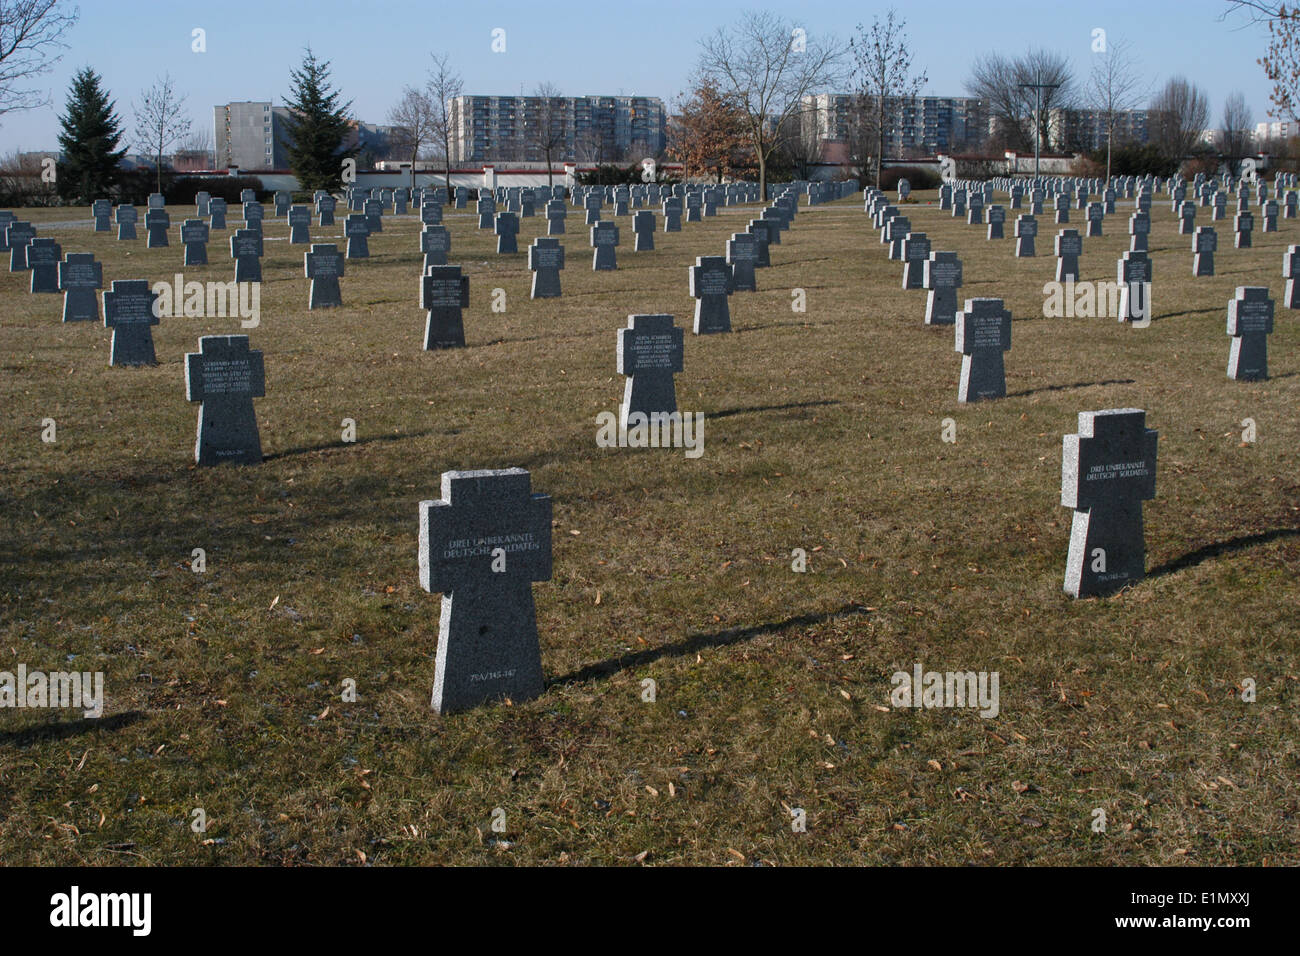 Graves of German Nazi soldiers on the ground of the German War Memorial at the Central Cemetery in Brno, Czech Republic. At least 1,561 German soldiers who served in the Wehrmacht and died during World War II are buried here. - Stock Image